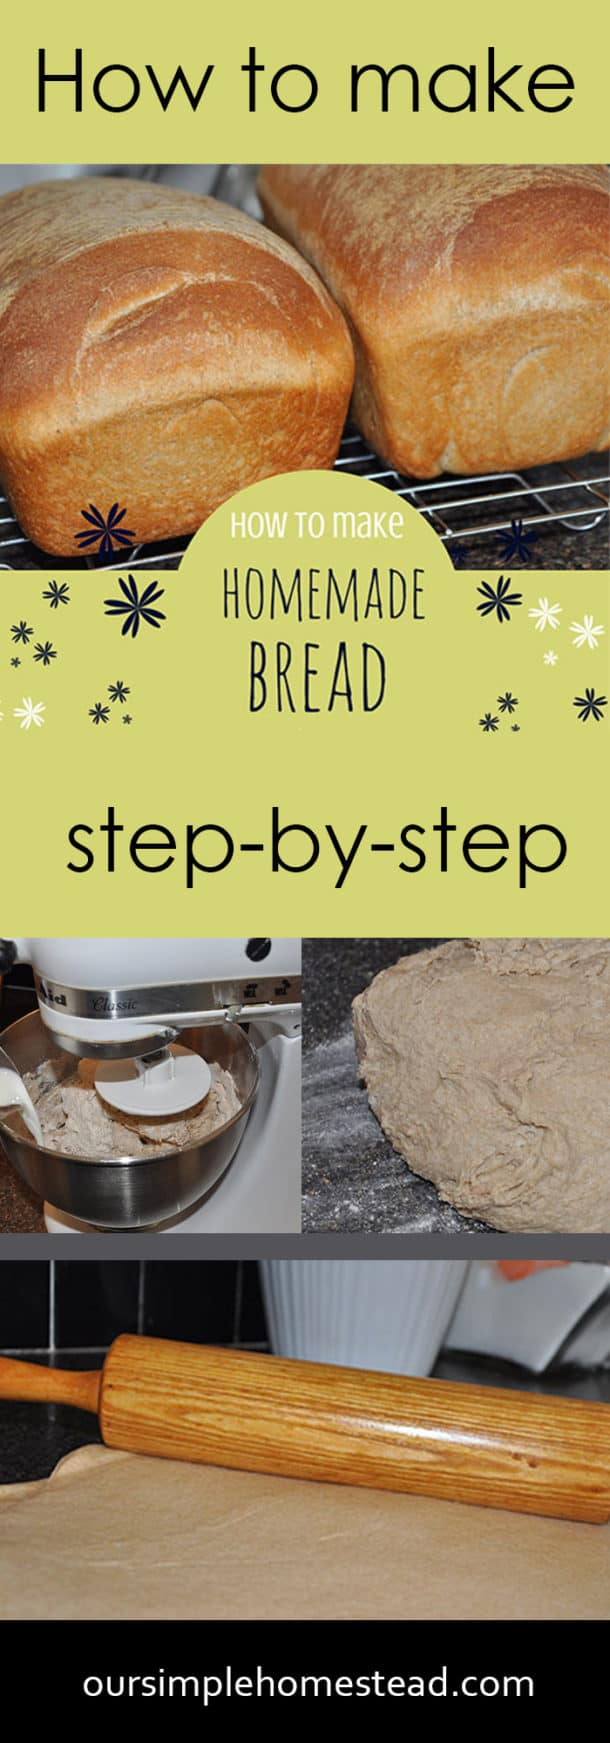 how to make bread A delicious, easy-to-make, moist zucchini bread recipe, with freshly grated zucchini, cinnamon, nutmeg, and optional walnuts and dried cranberries or raisins.